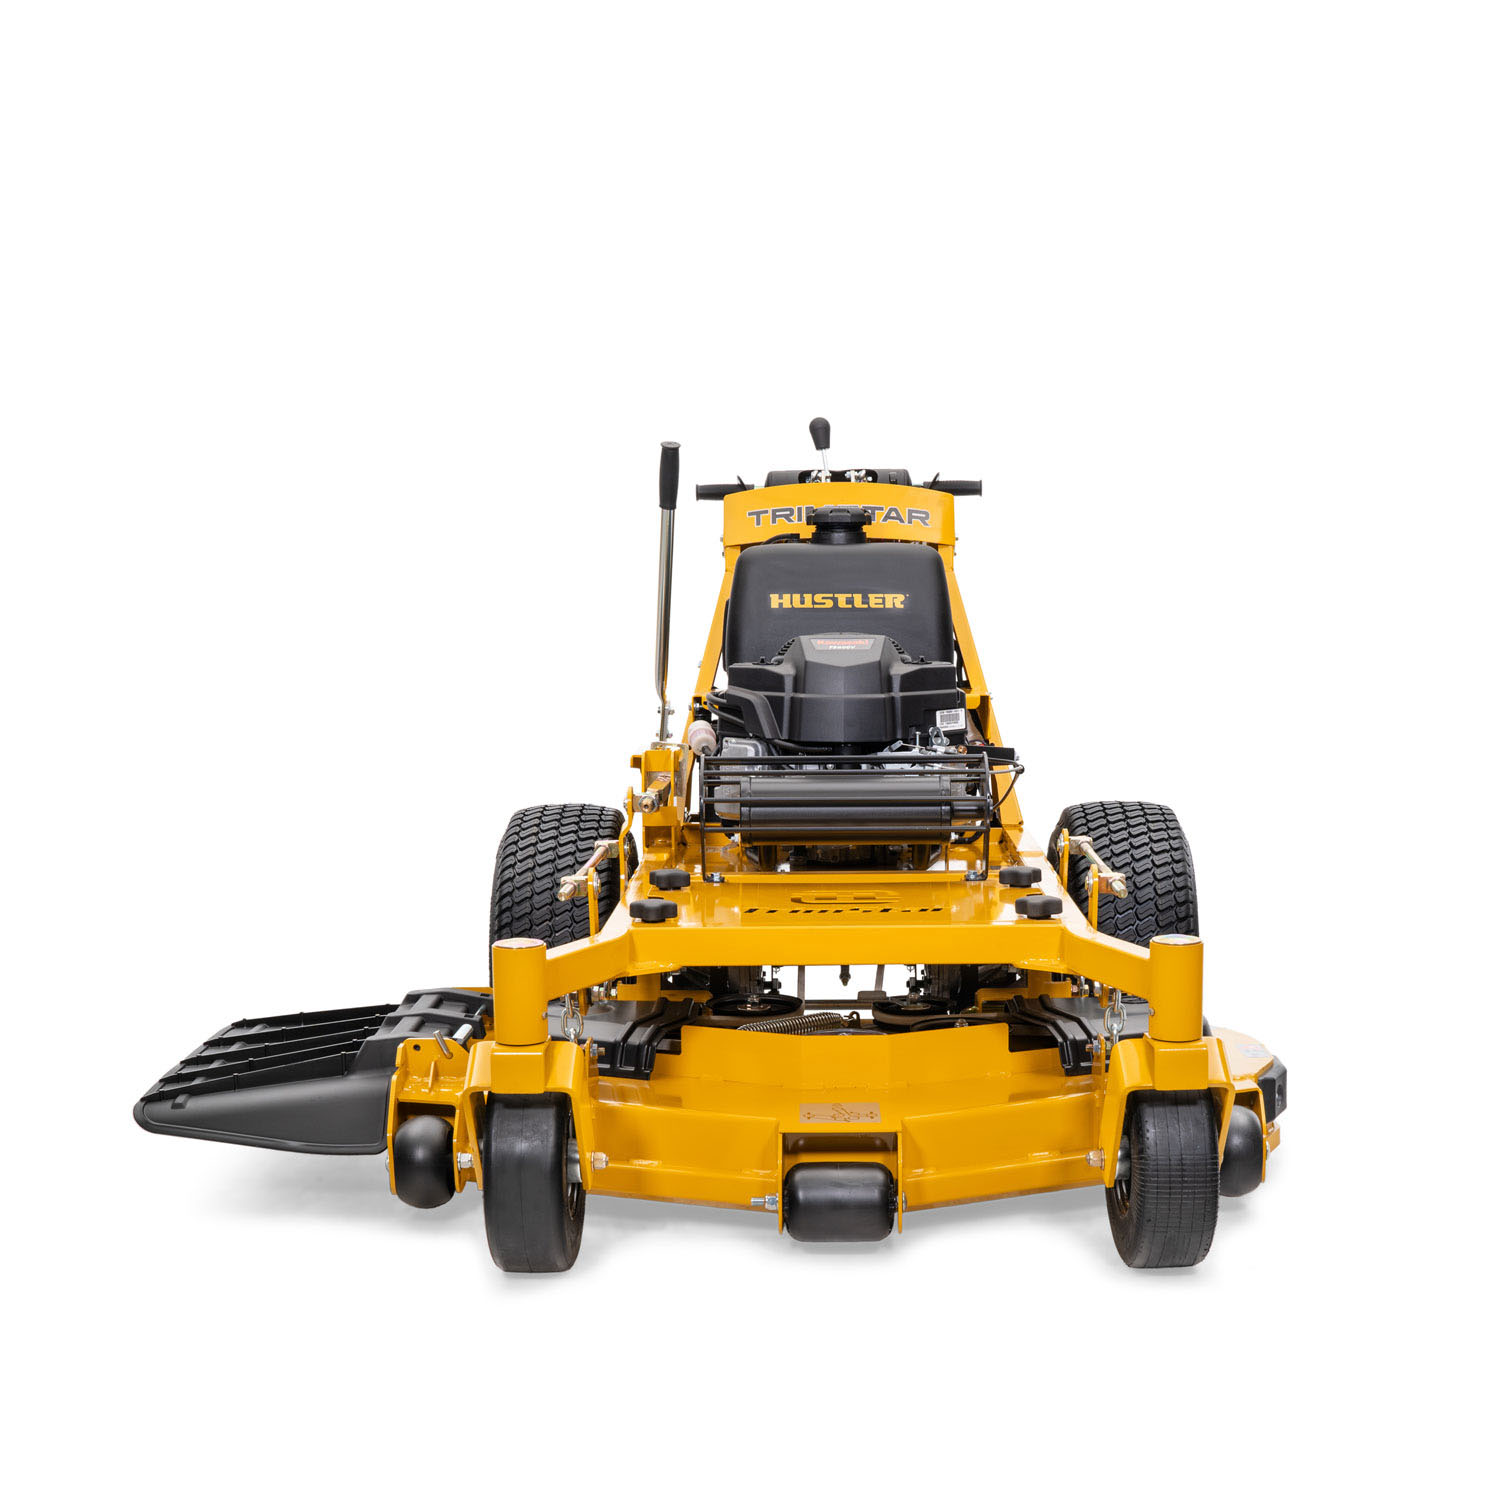 Image of the front of a yellow walk-behind mower